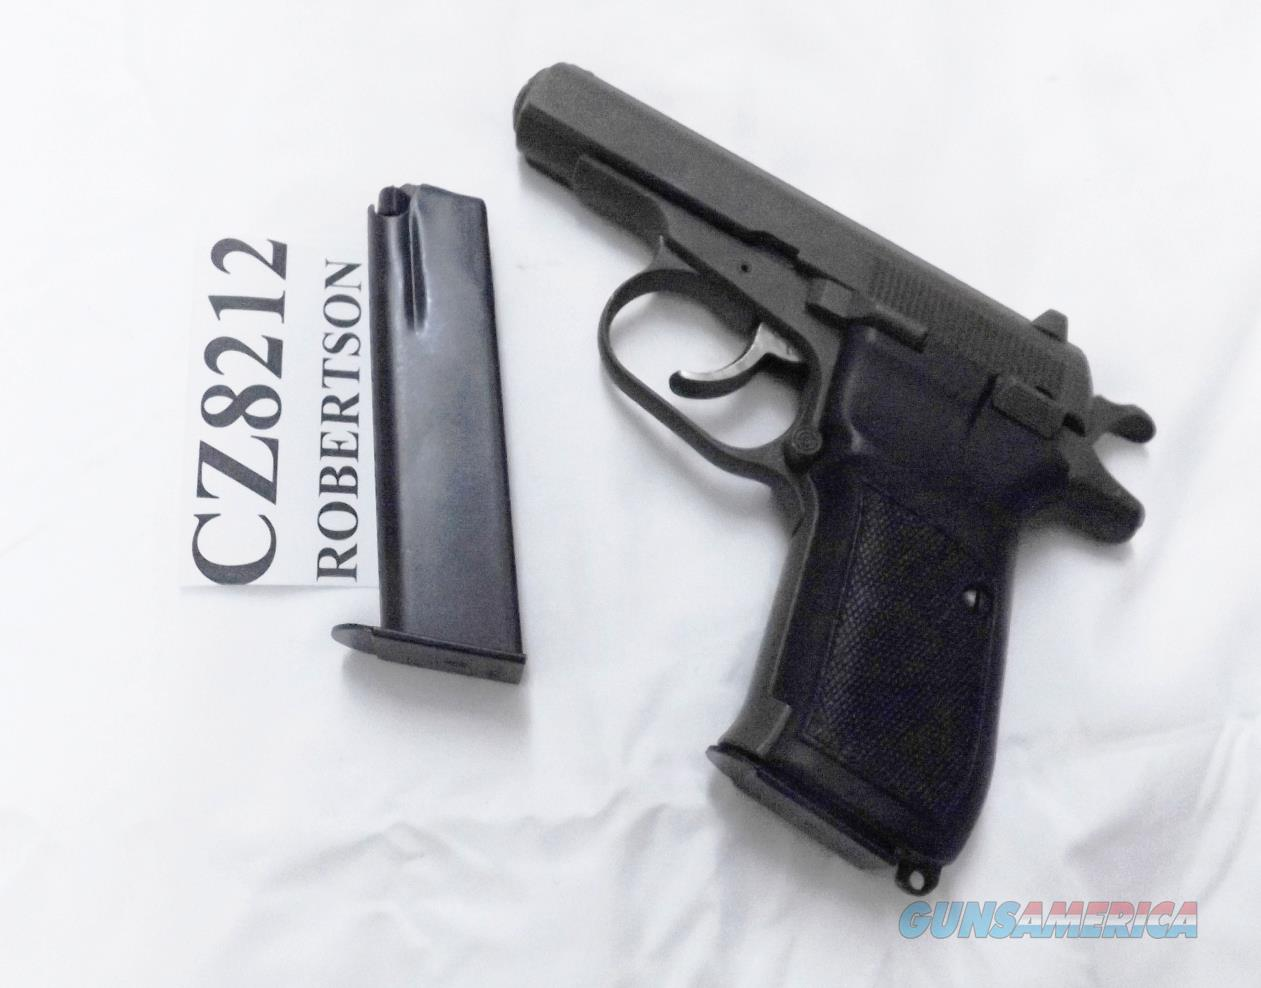 CZ-83 .380 or CZ-82 9x18 Makarov CZ Military 12 round Magazines Blue Pressure Treated New XMCZ8212 $3 Ship, Buy 3 Shipping's Free!  Non-Guns > Magazines & Clips > Pistol Magazines > Other